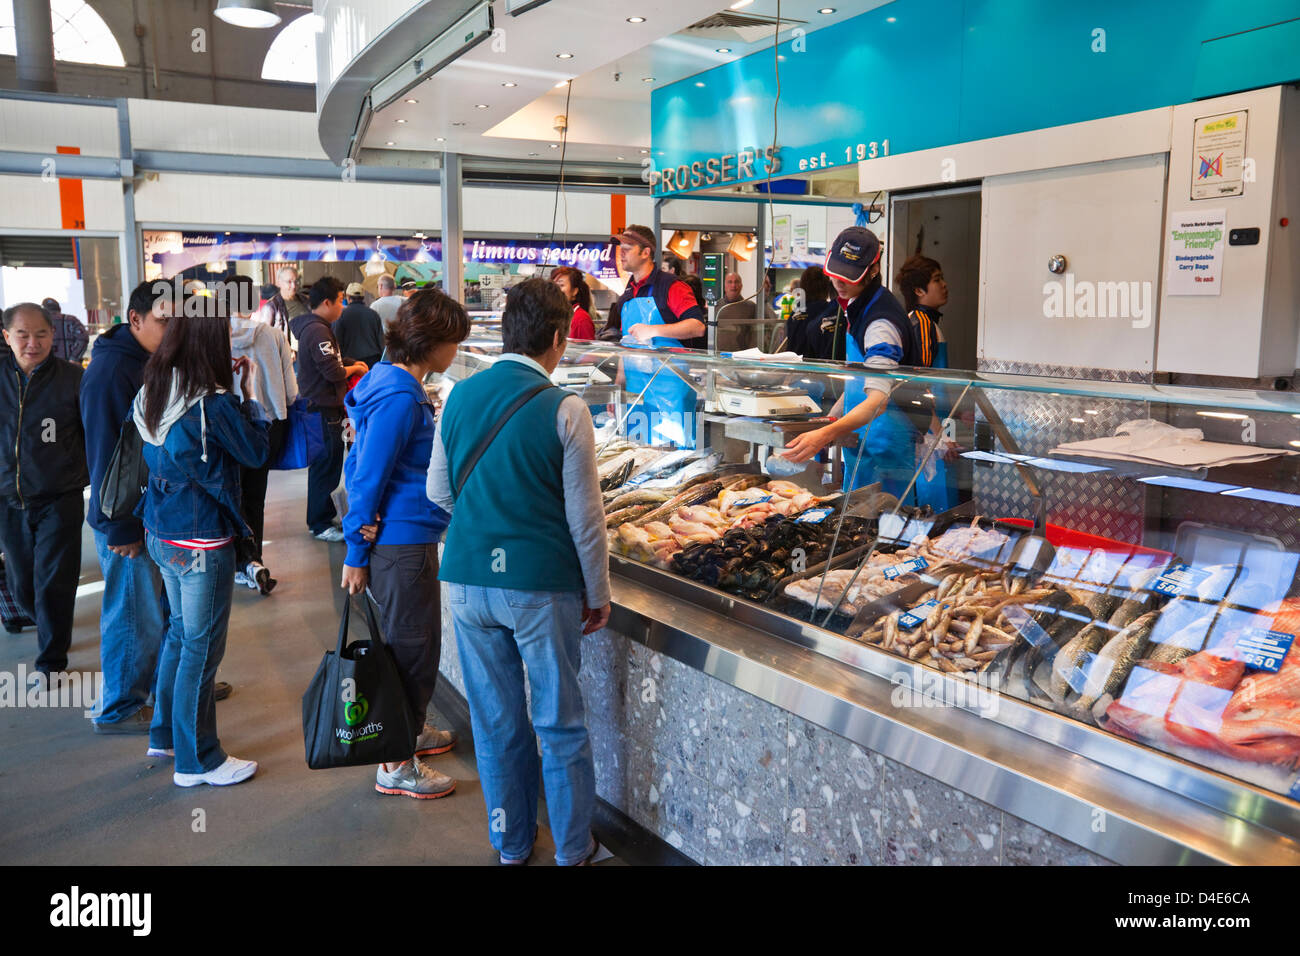 Restaurant For Sale In Melbourne Victoria Market Melbourne Food Stock Photos And Victoria